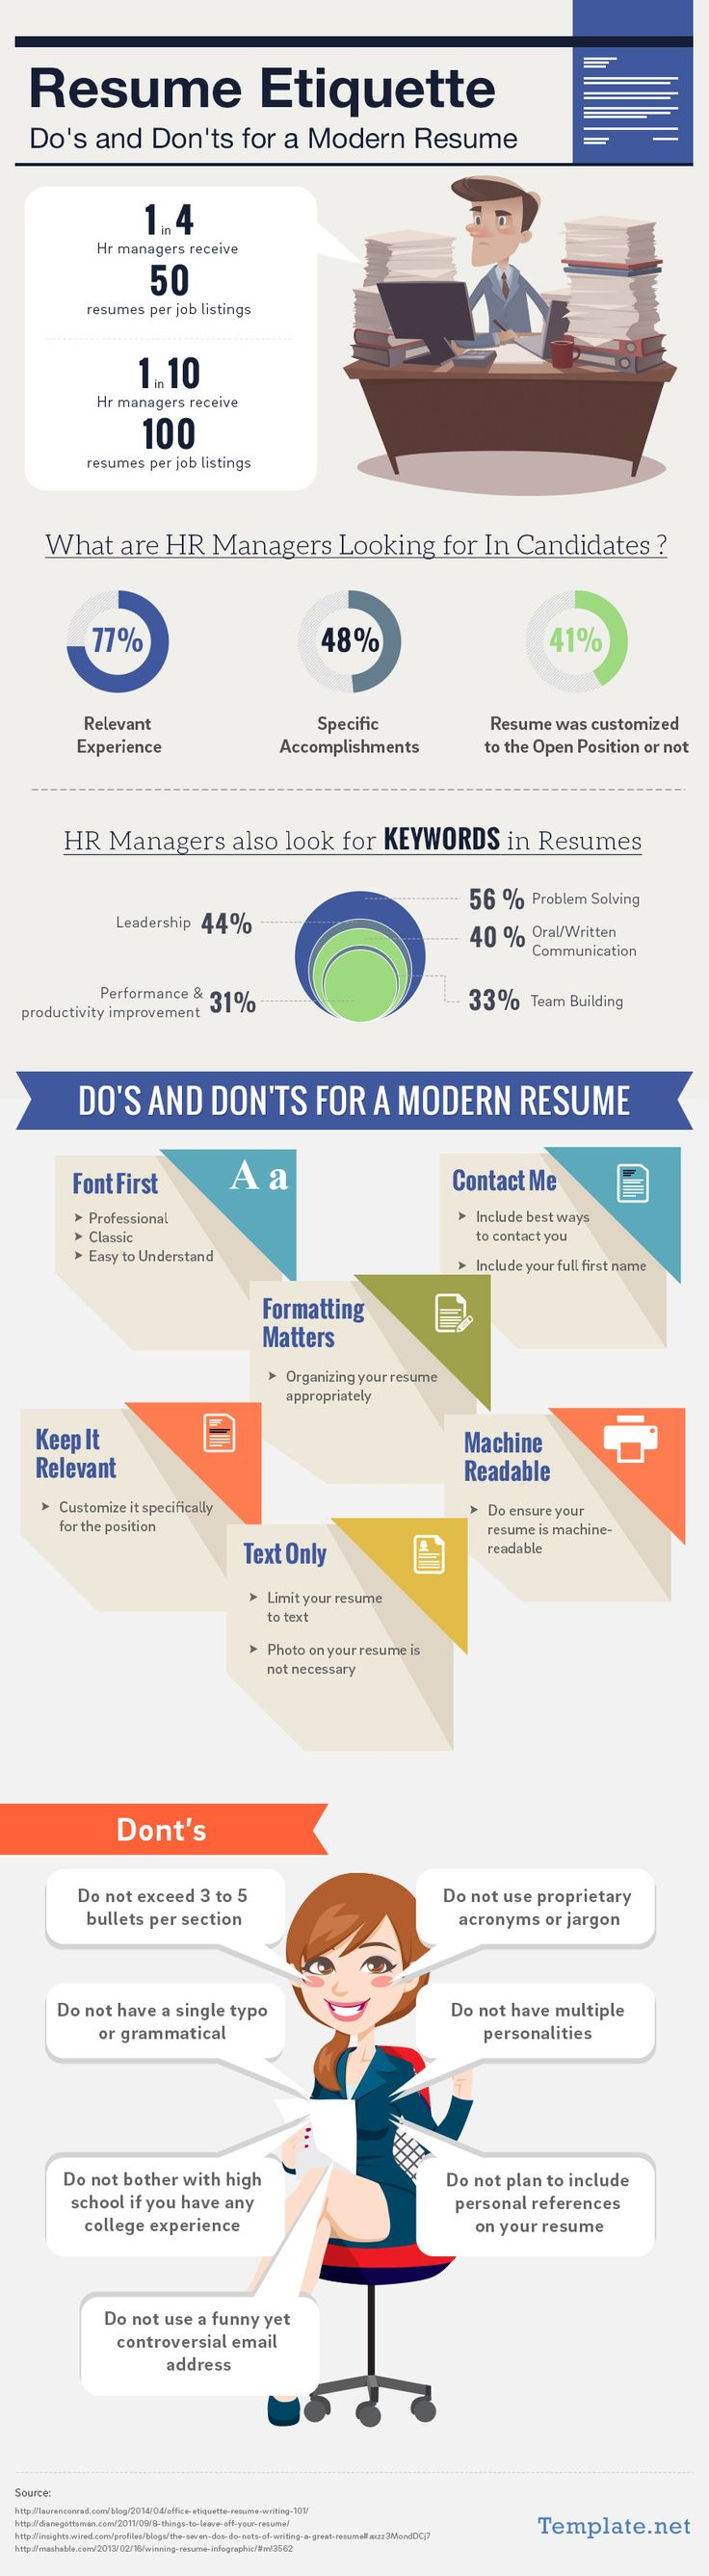 Resume Etiquette Do's and Don'ts for a Modern Resume #infographic #Career #Resume